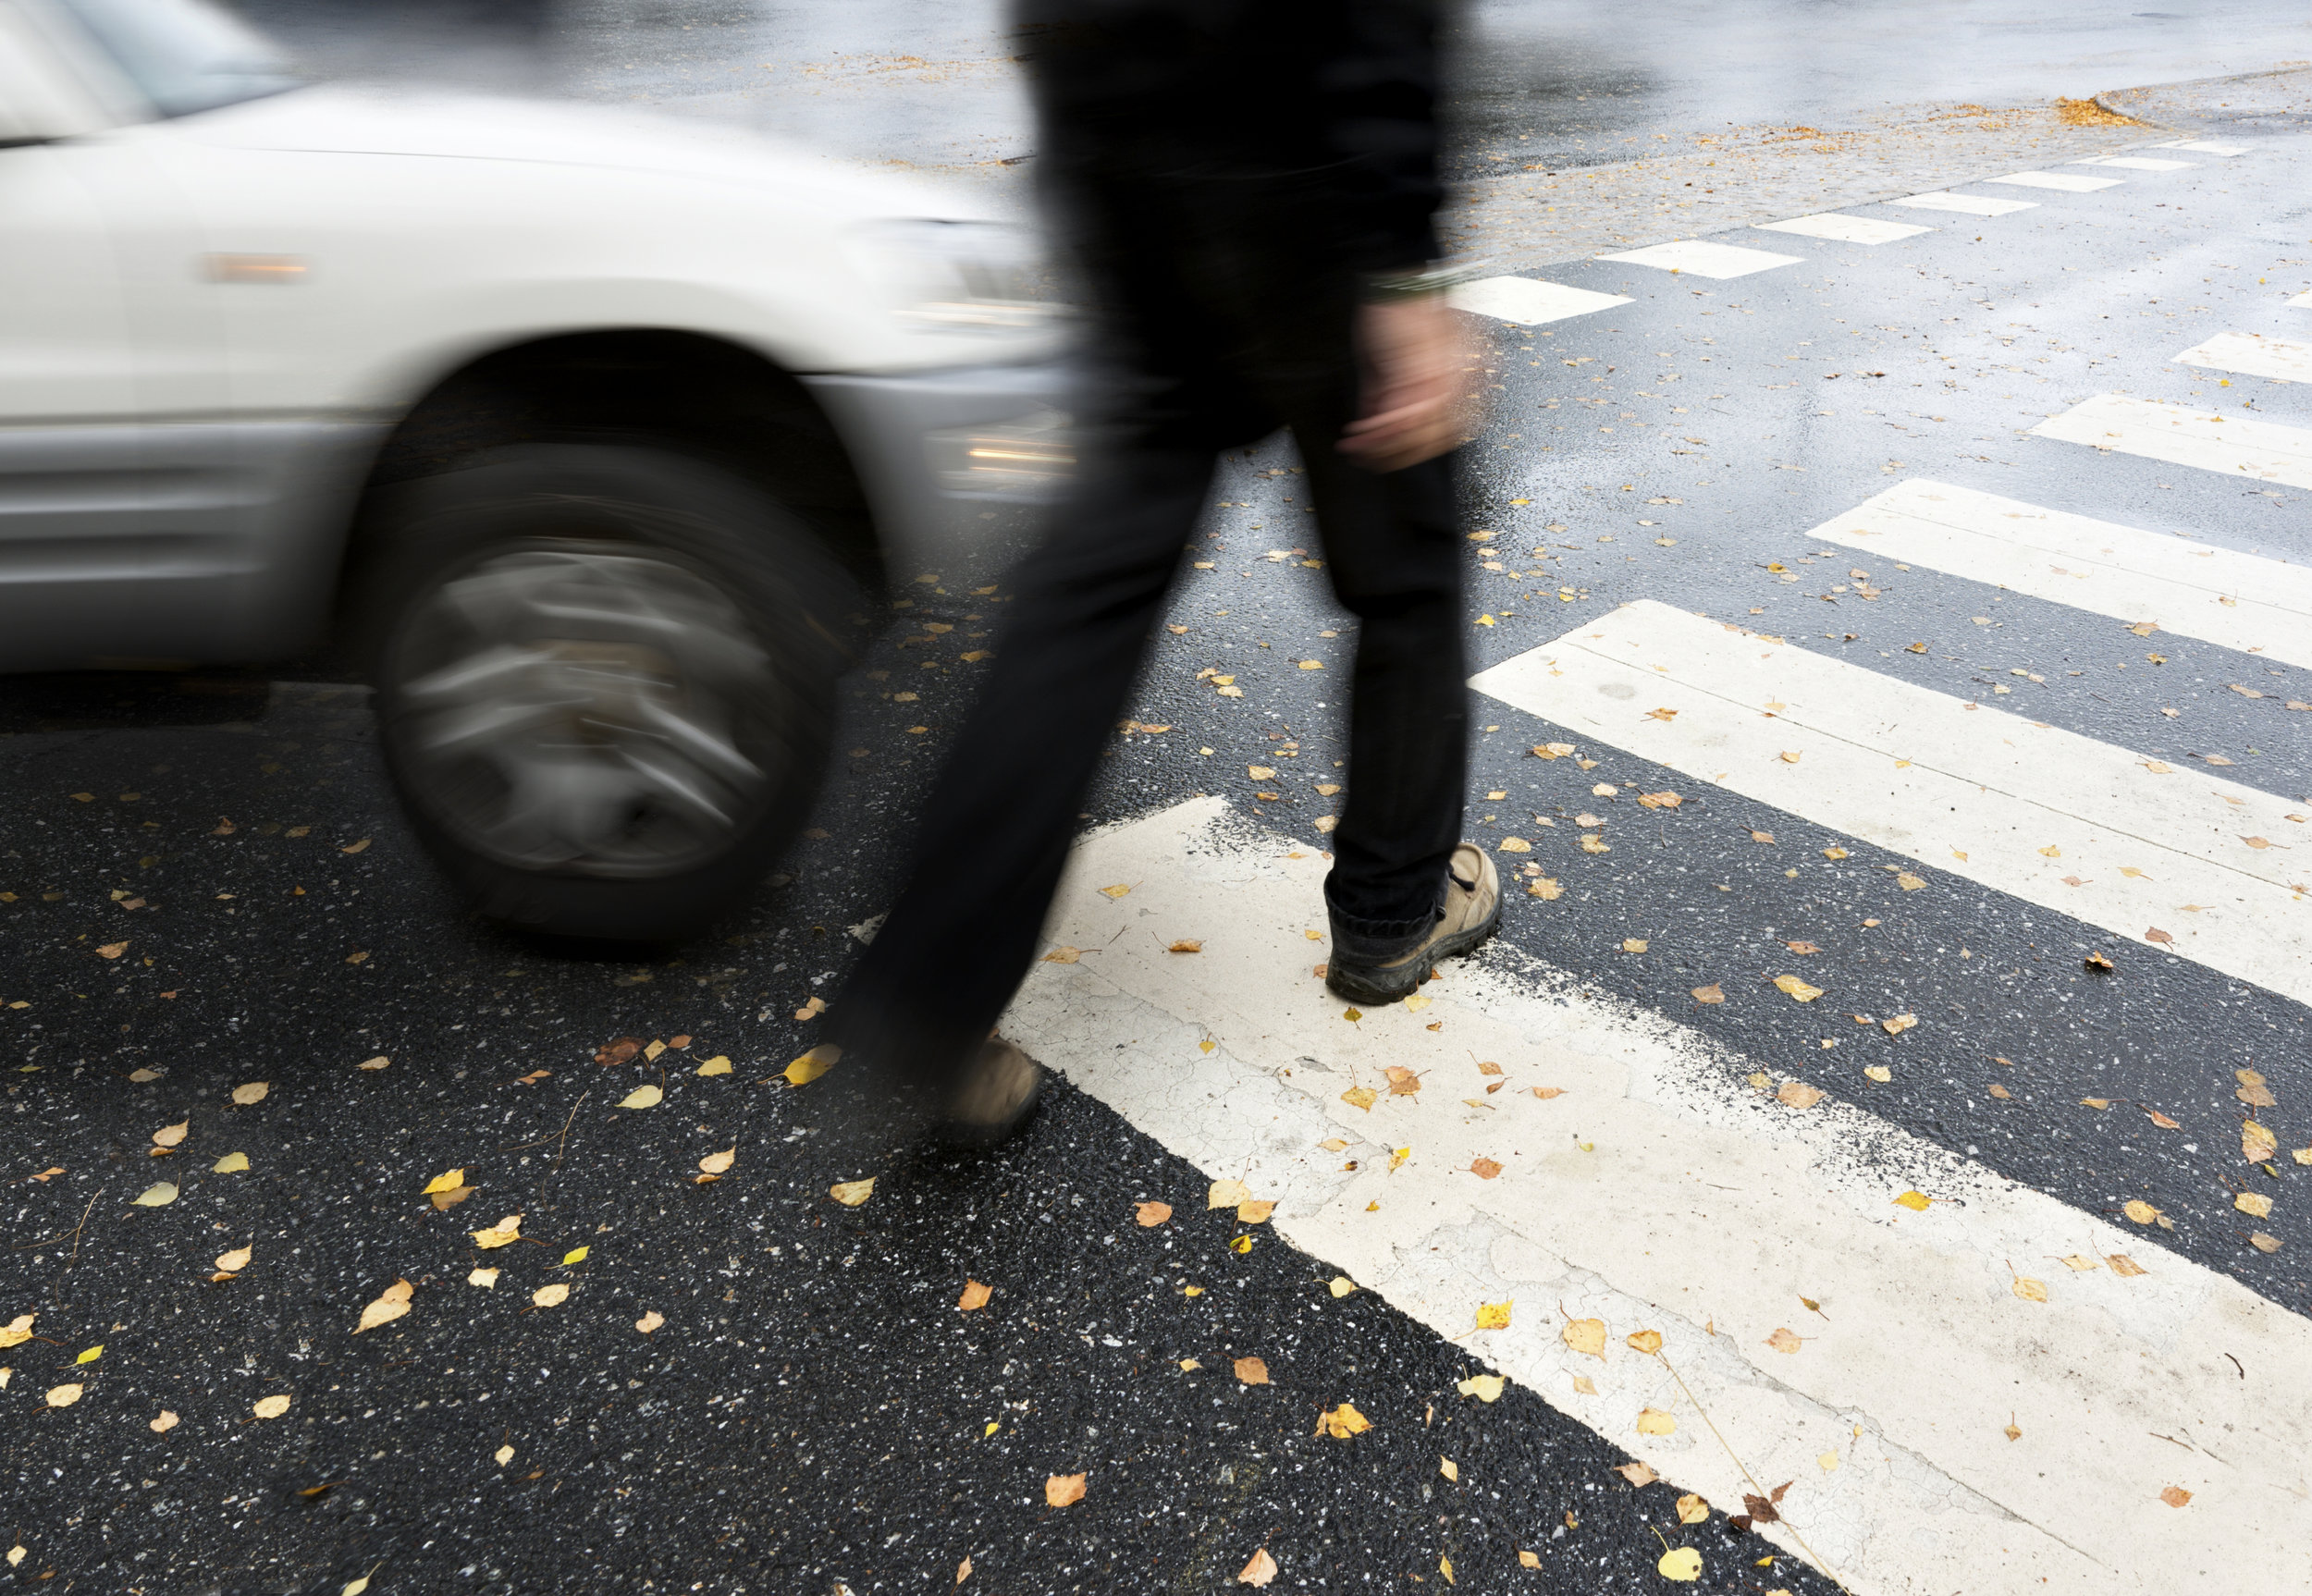 A pedestrian accident can occur if a driver is distracted, speeding, or disobeying traffic signals.